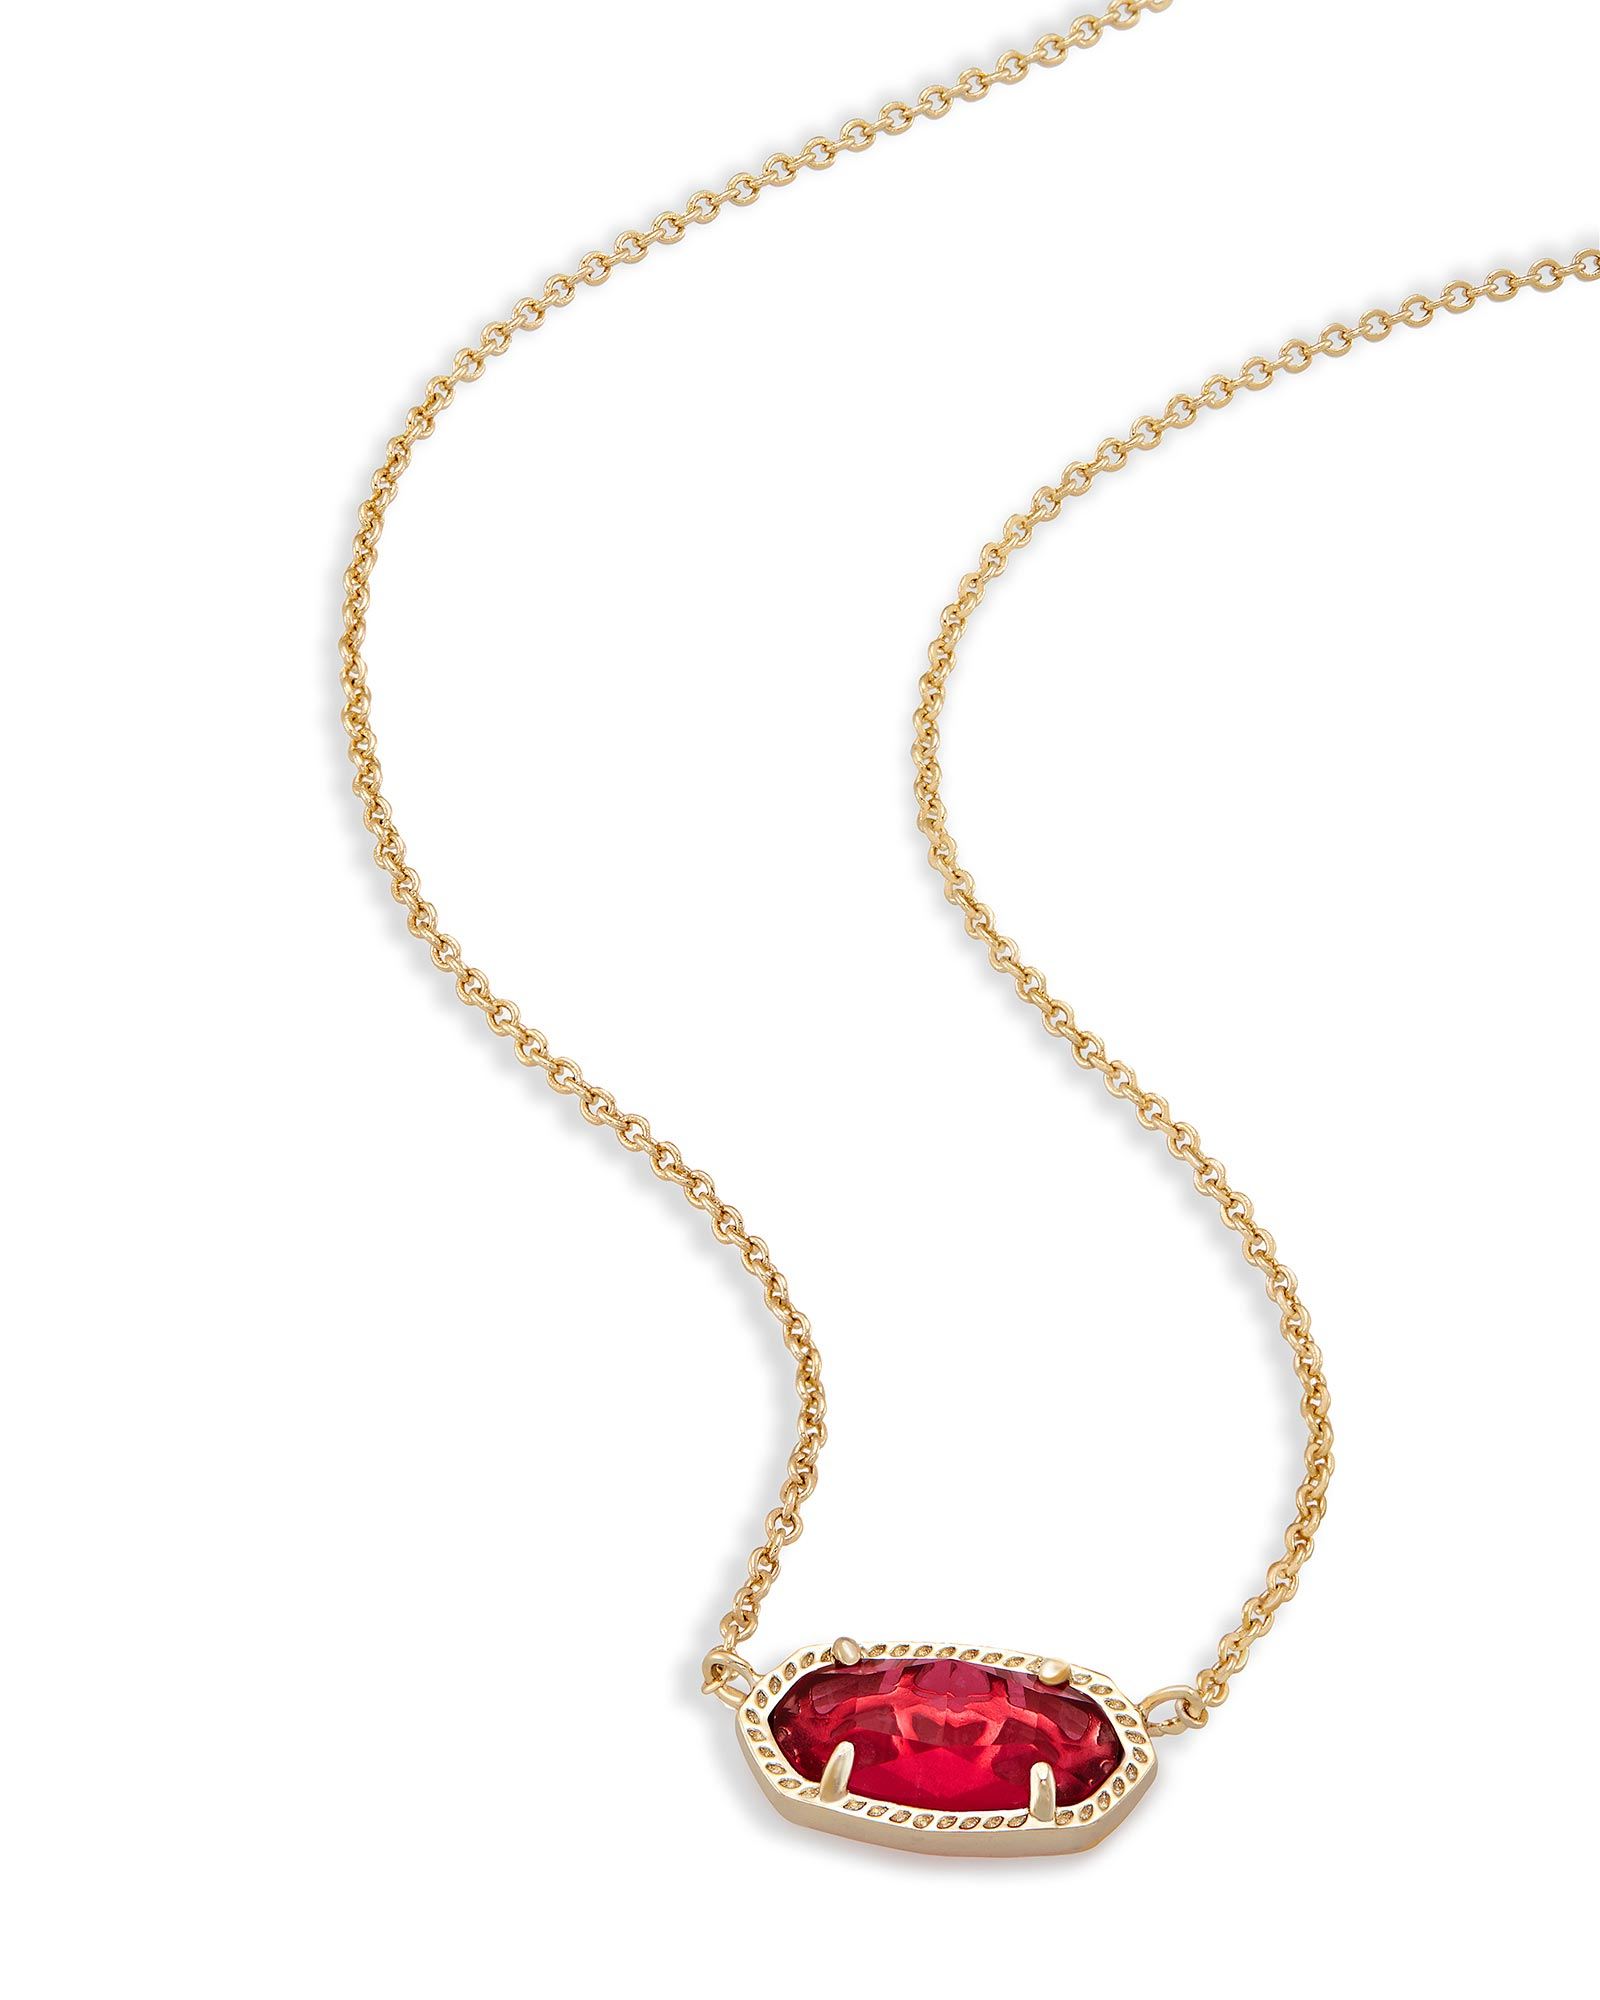 Elisa Brass Pendant Necklace In Berry | Kendra Scott Inside Most Recently Released Multi Colored Crystal Patterns Of Frost Pendant Necklaces (View 11 of 25)